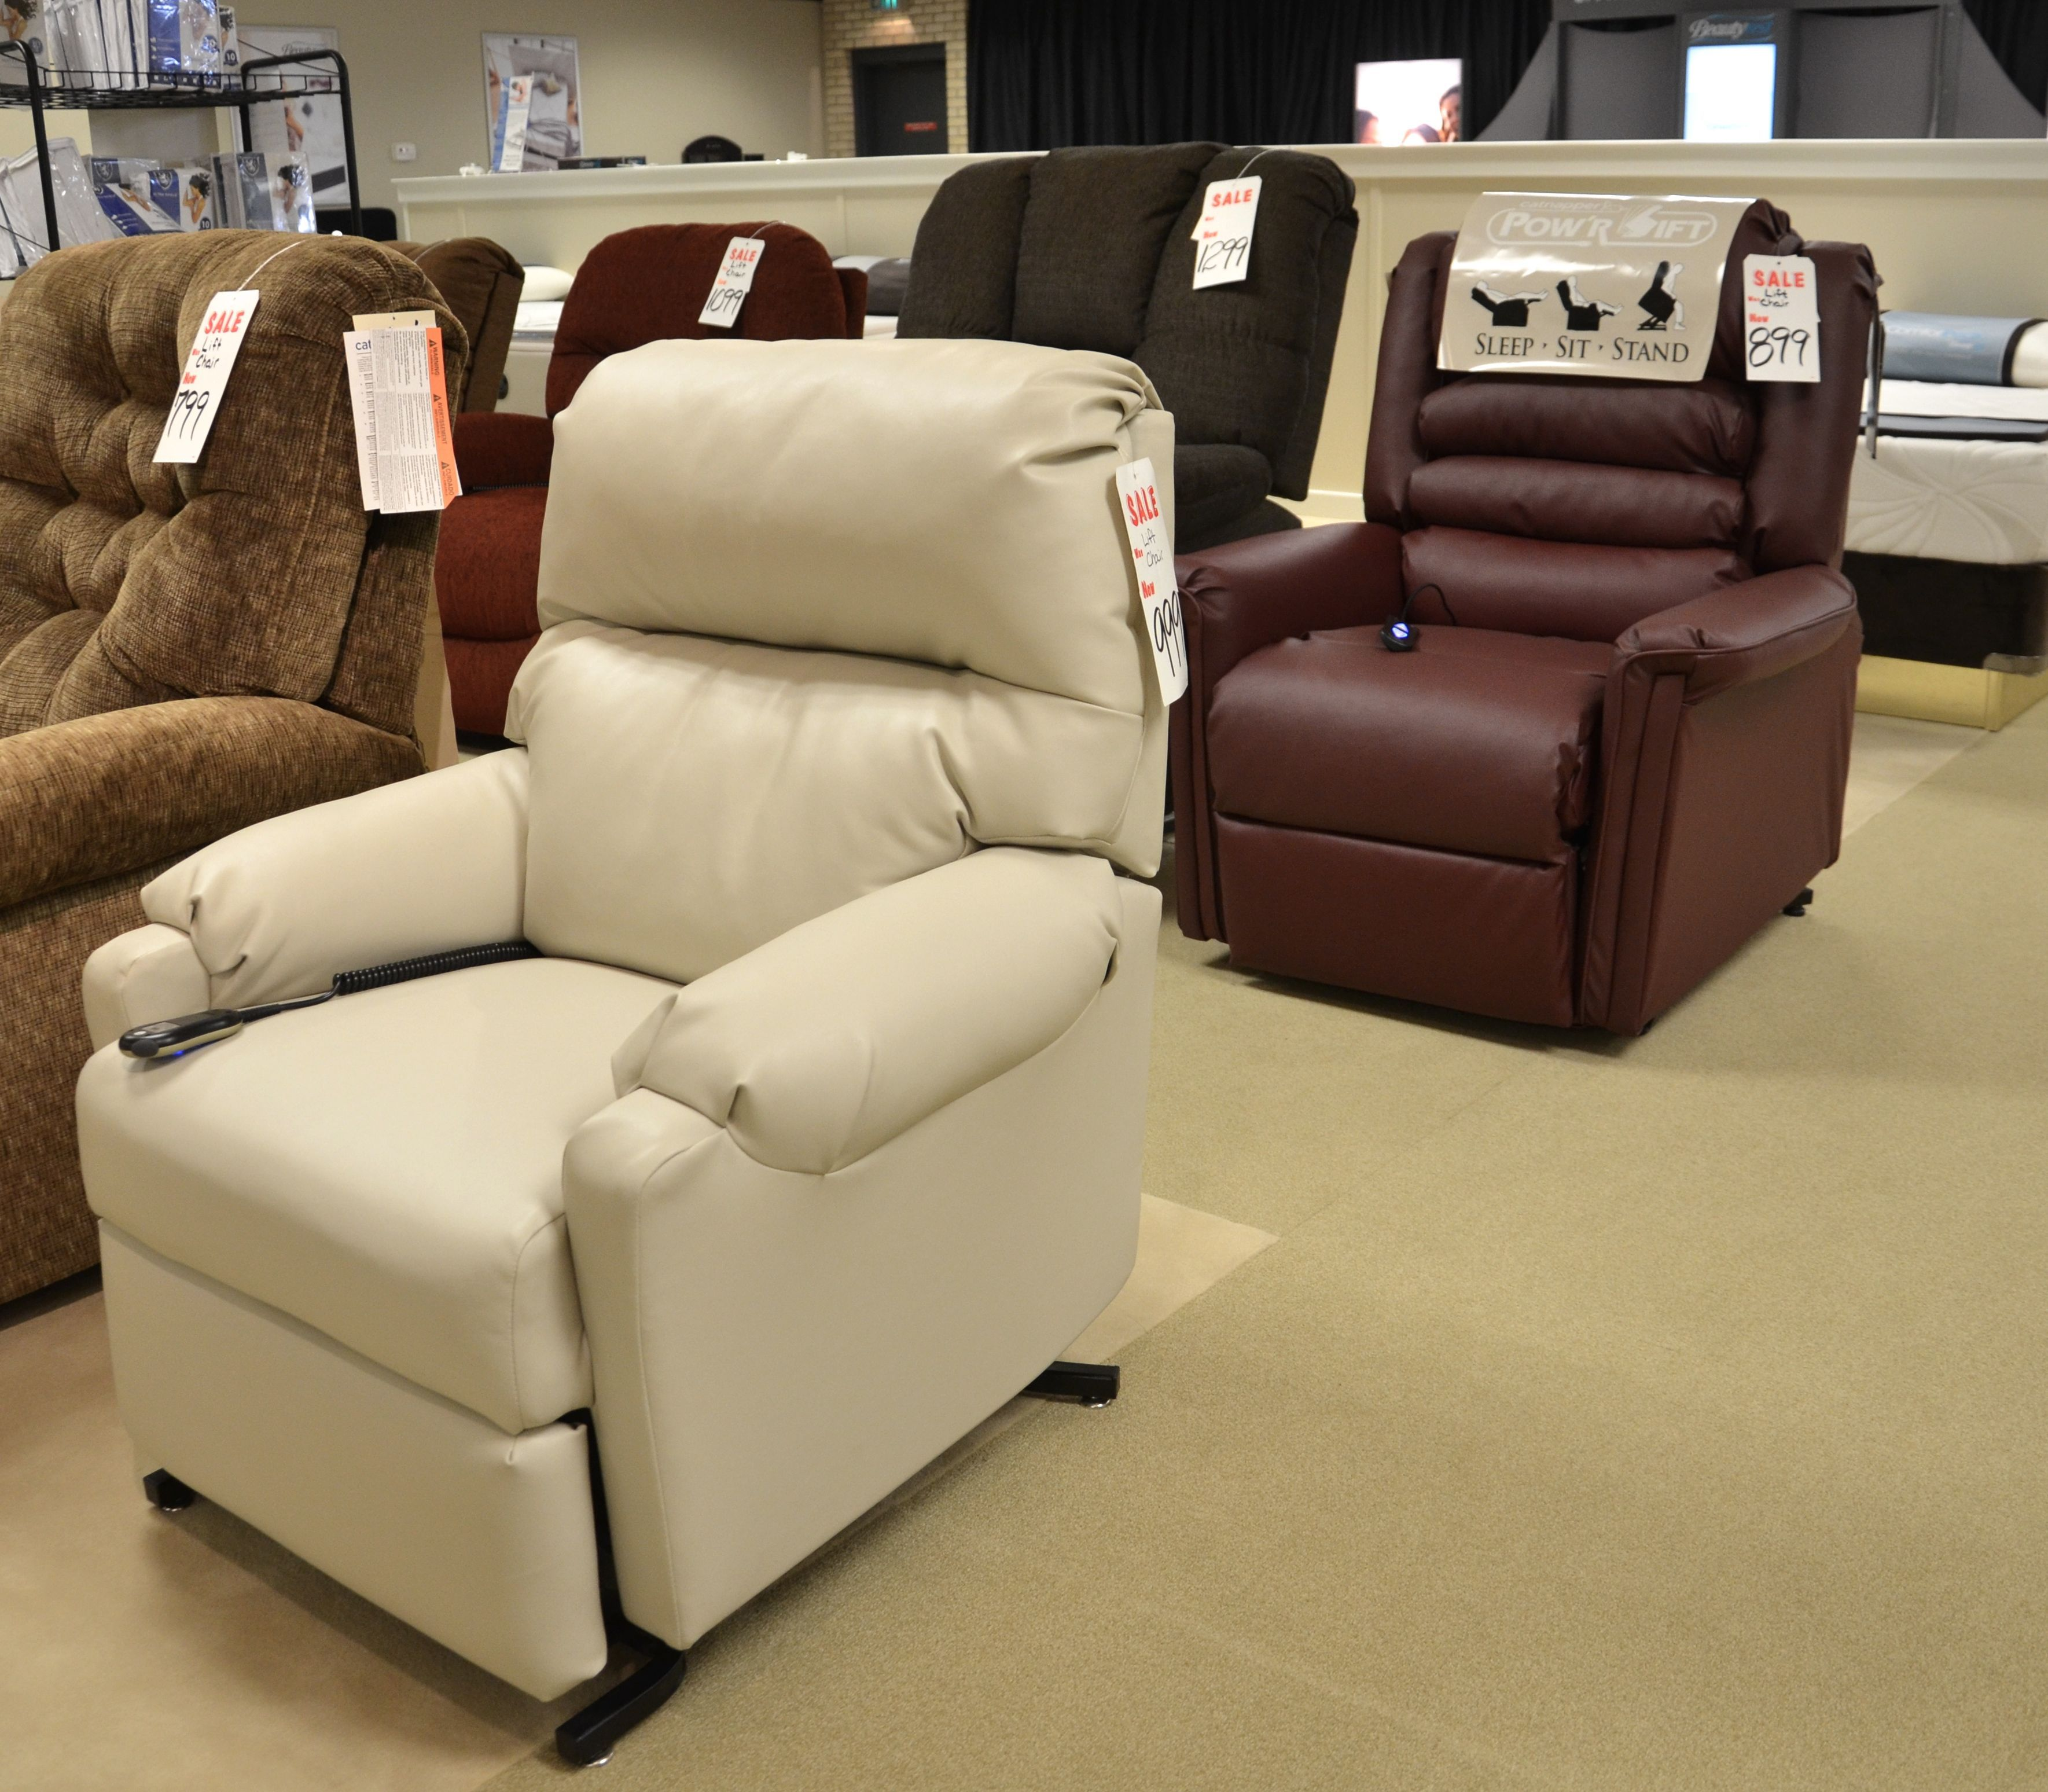 Peachy Leather Power Lift Chairs And Recliners Casual Leather Ibusinesslaw Wood Chair Design Ideas Ibusinesslaworg